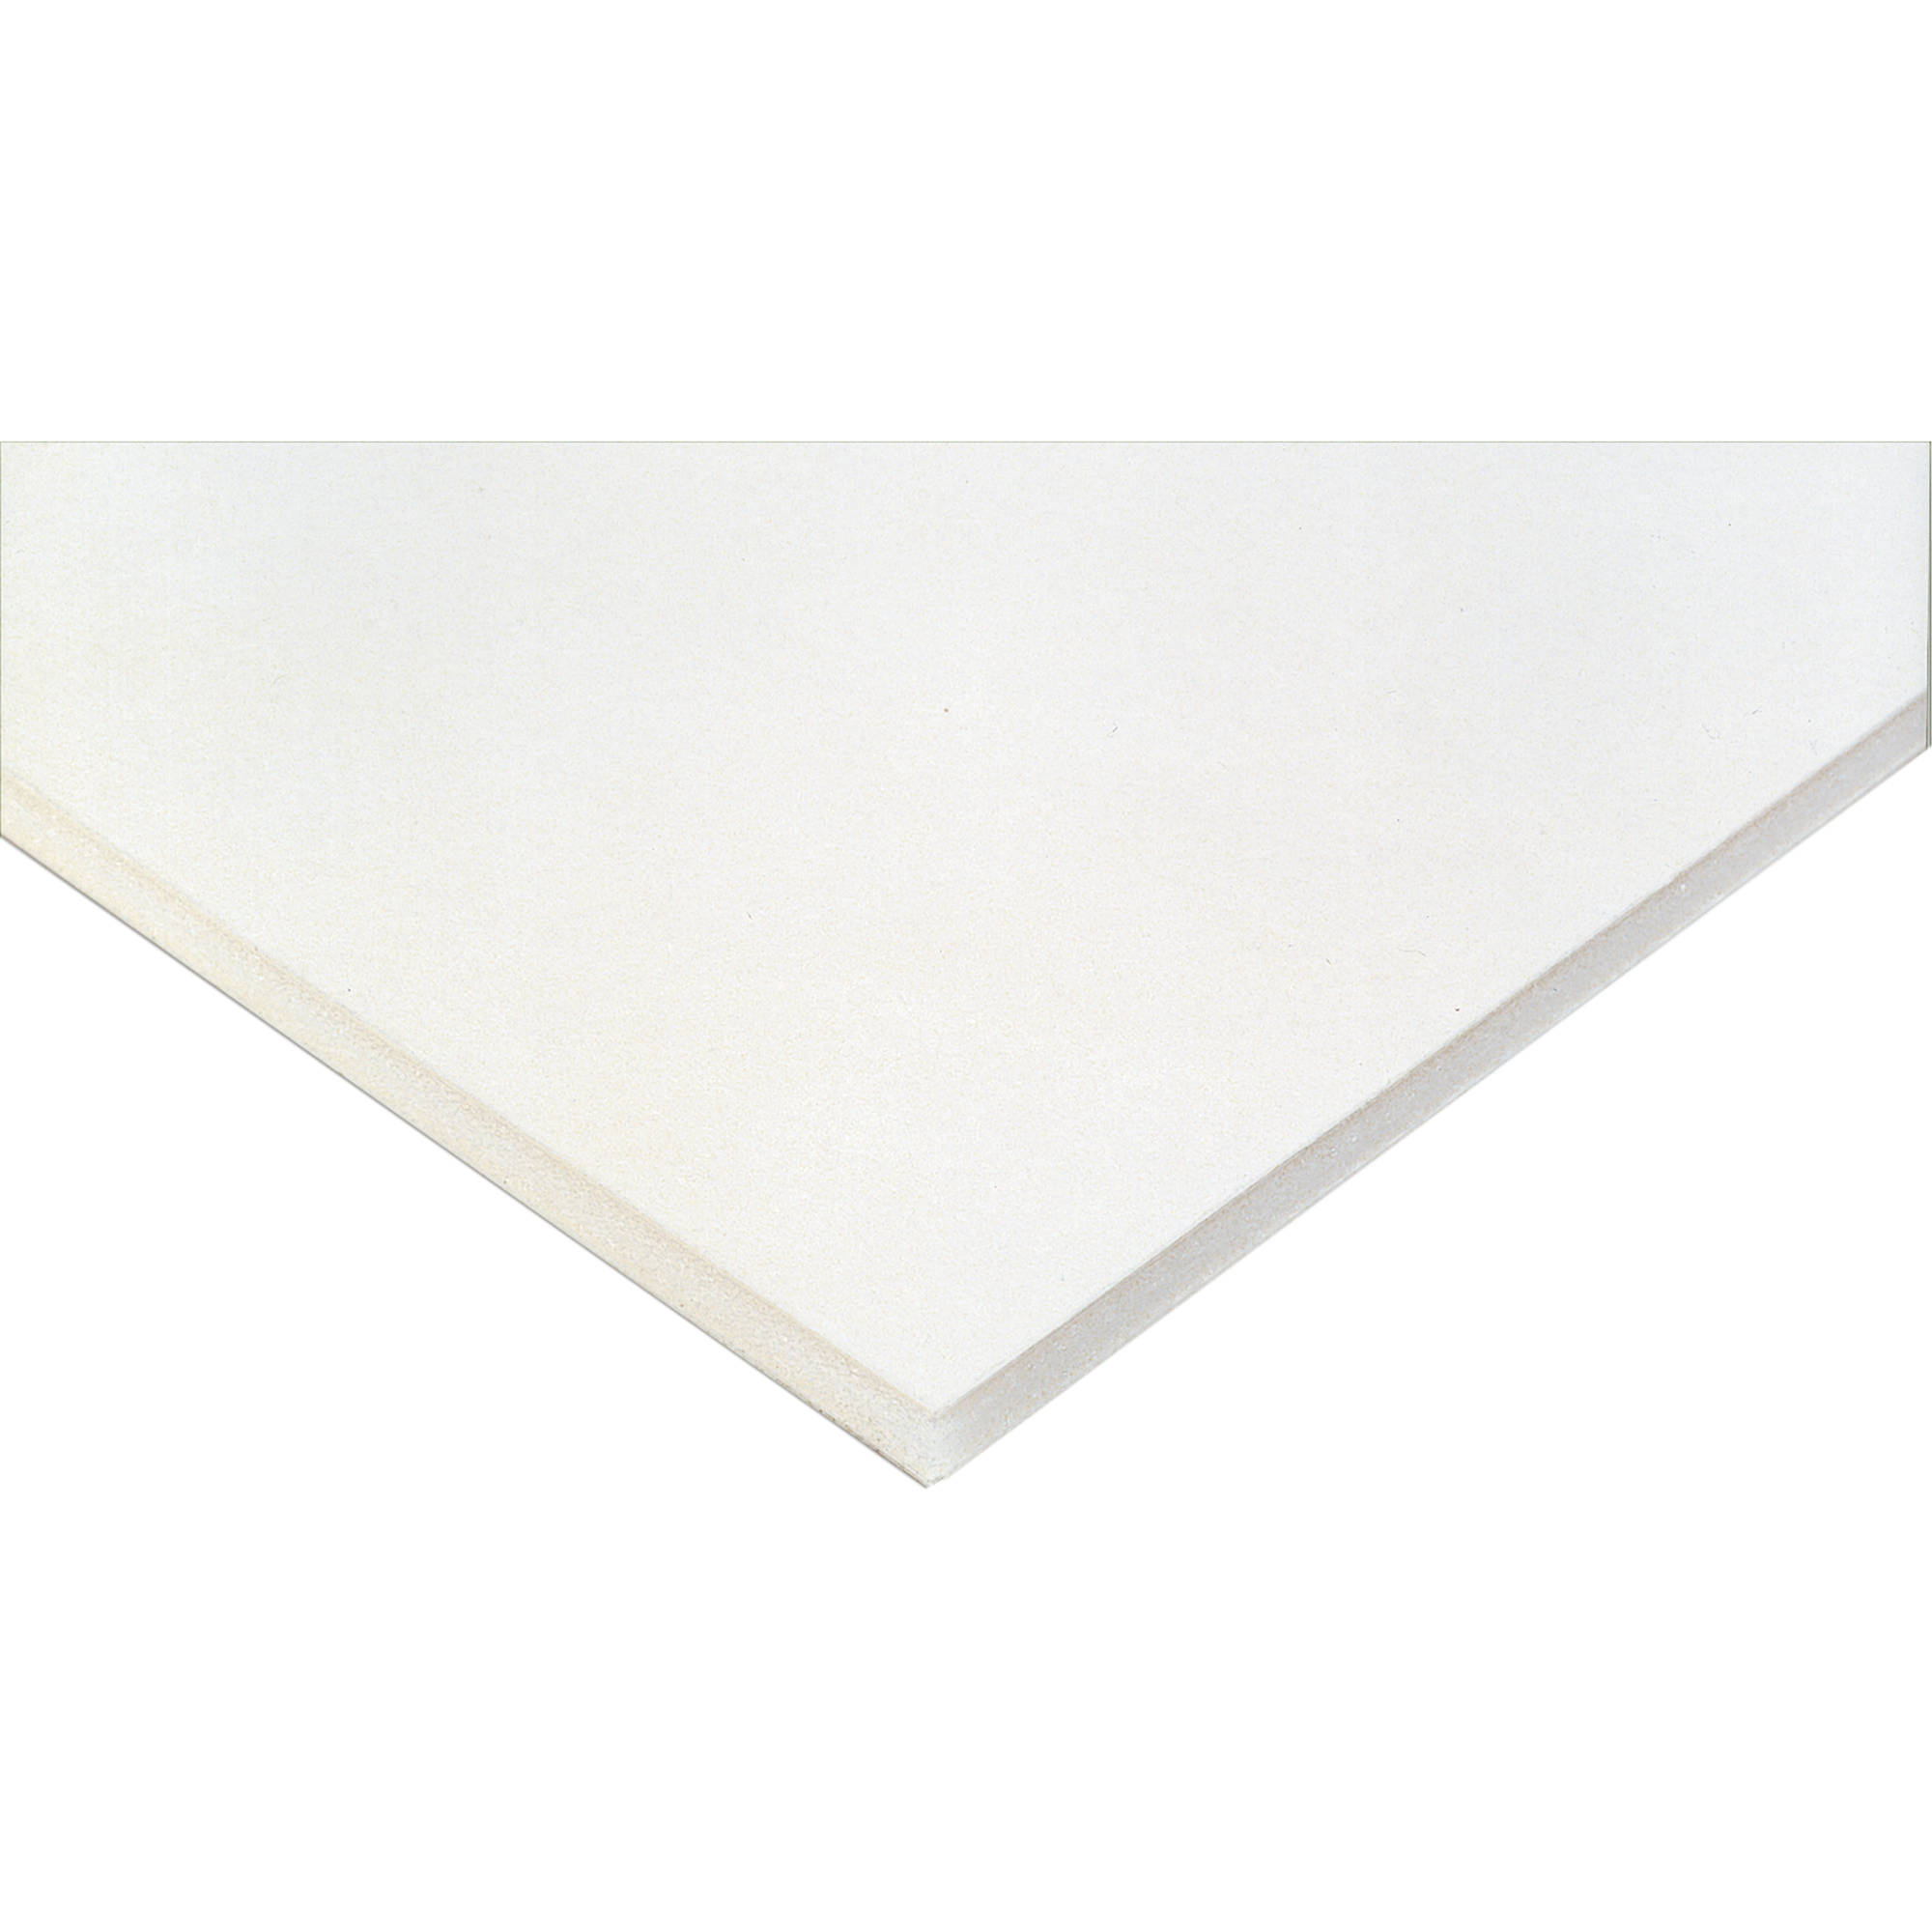 Nielsen Bainbridge Clay Coated Foam Core Board 32